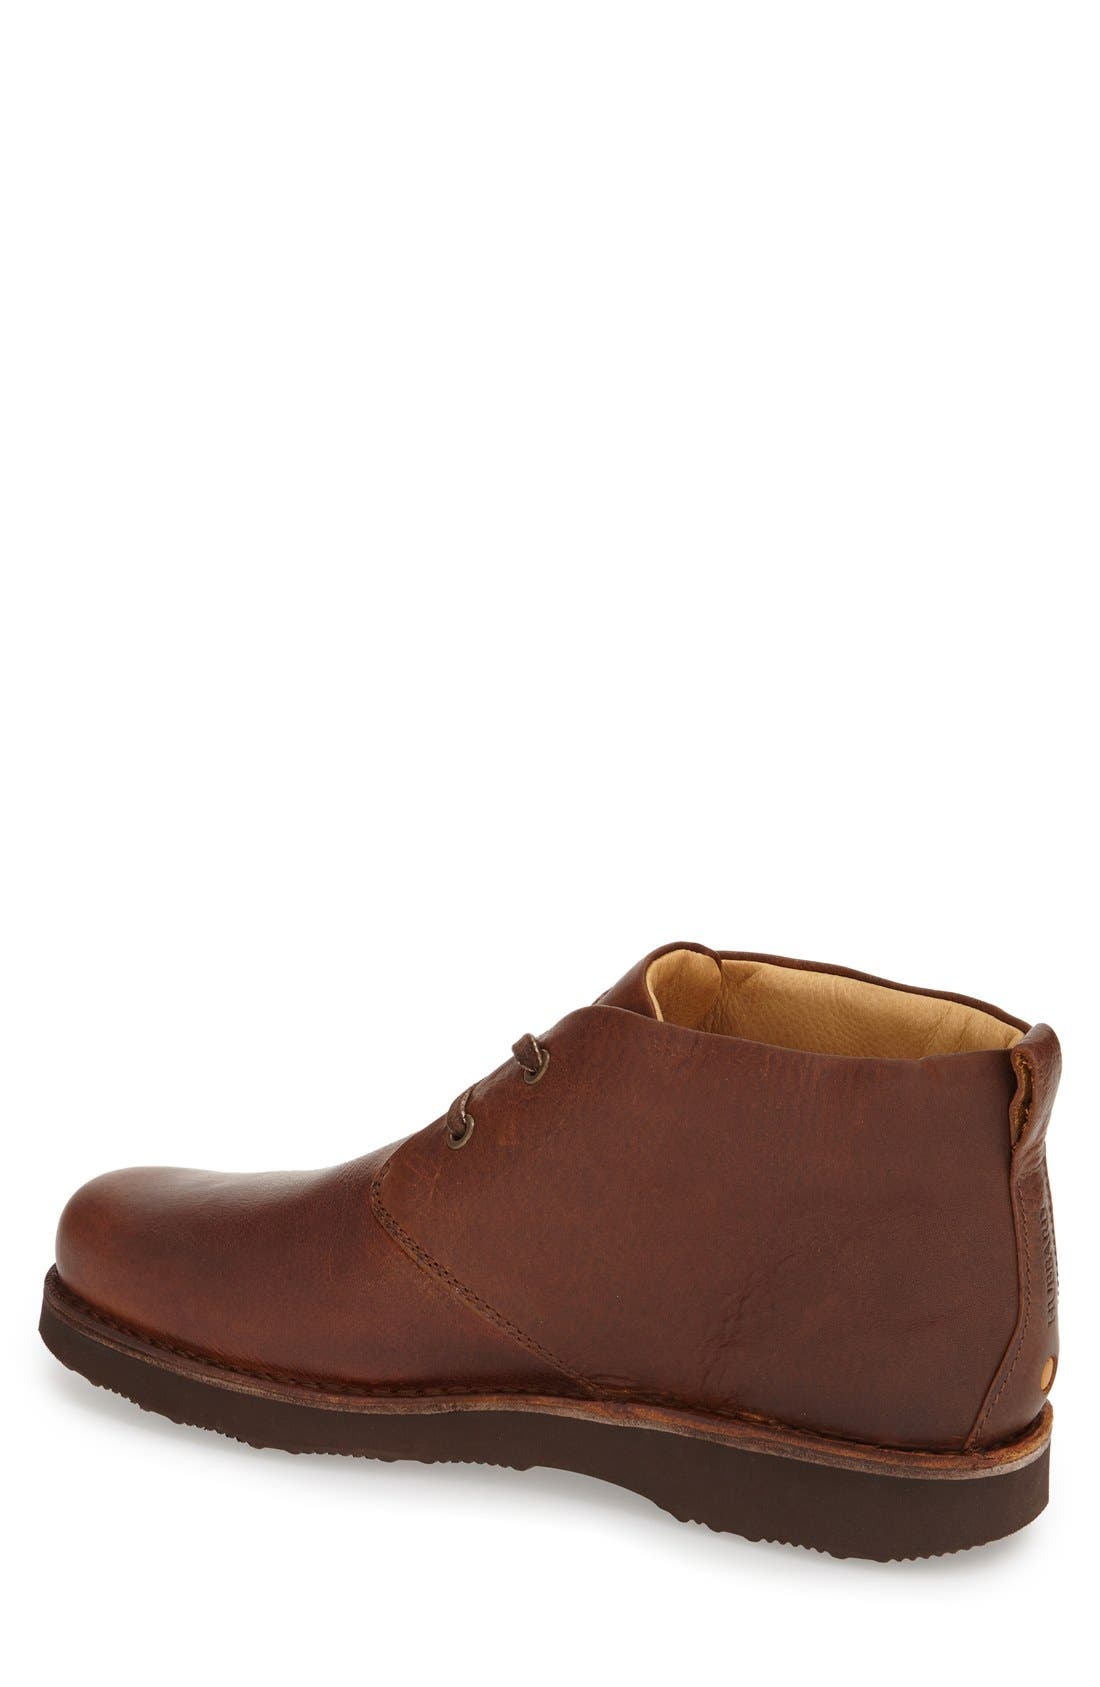 'Boot-Up' Chukka Boot,                             Alternate thumbnail 2, color,                             210